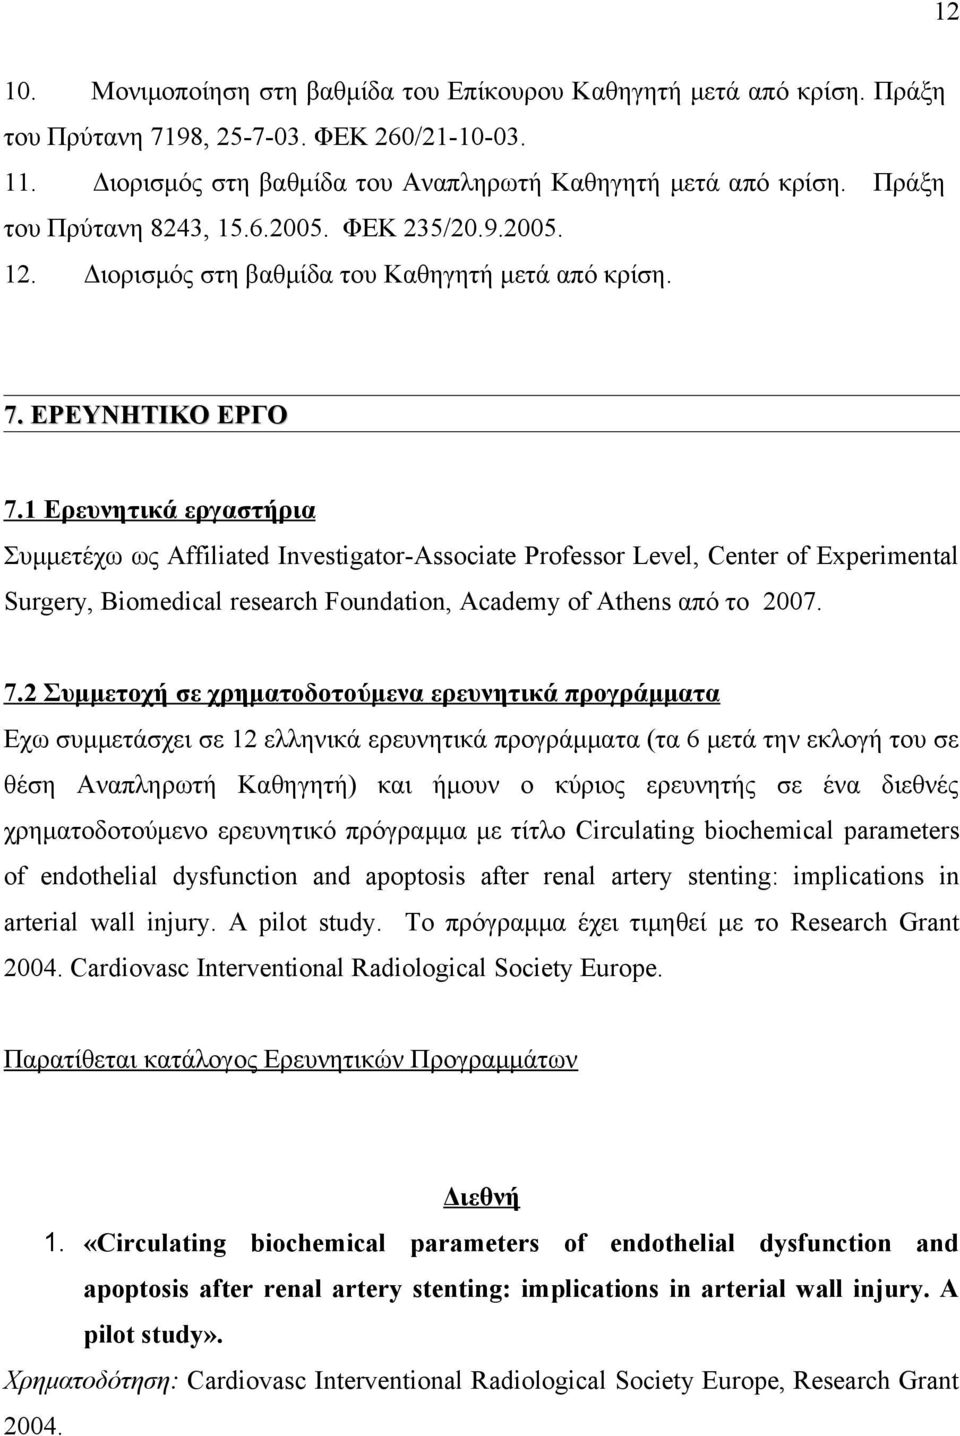 1 Ερευνητικά εργαστήρια Συμμετέχω ως Affiliated Investigator-Associate Professor Level, Center of Experimental Surgery, Biomedical research Foundation, Academy of Athens από το 2007. 7.